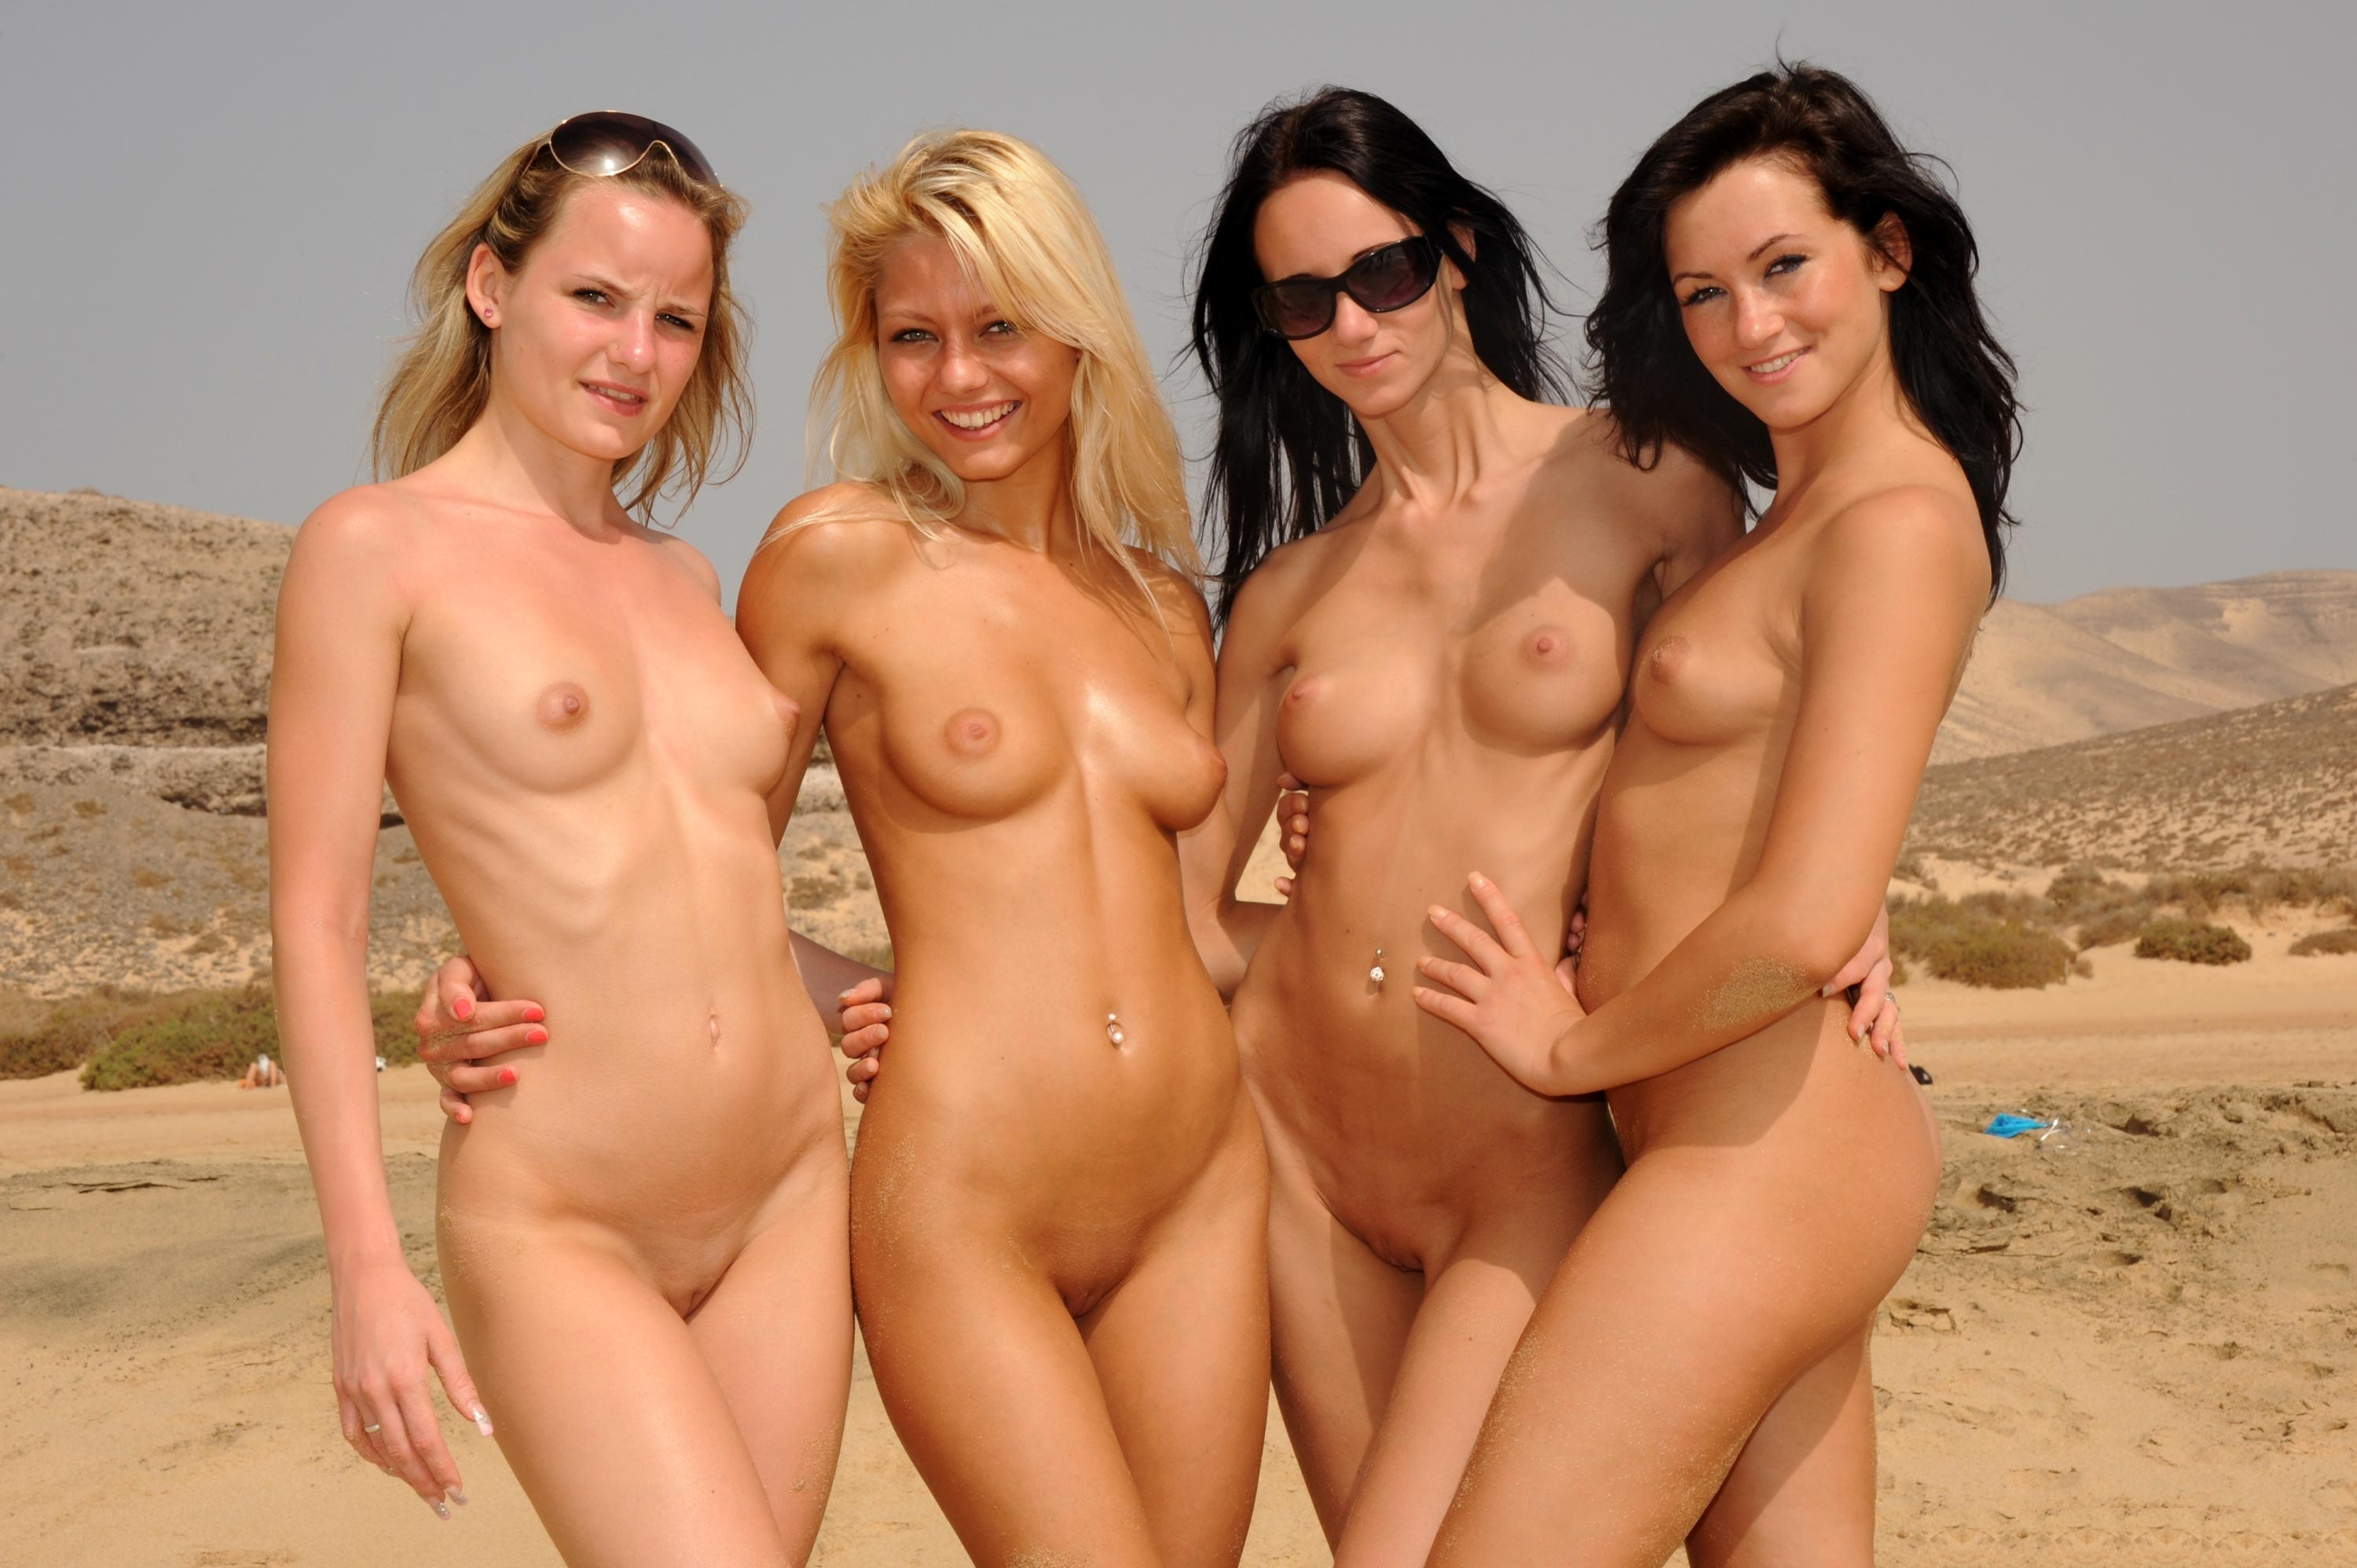 nude group girls on beach